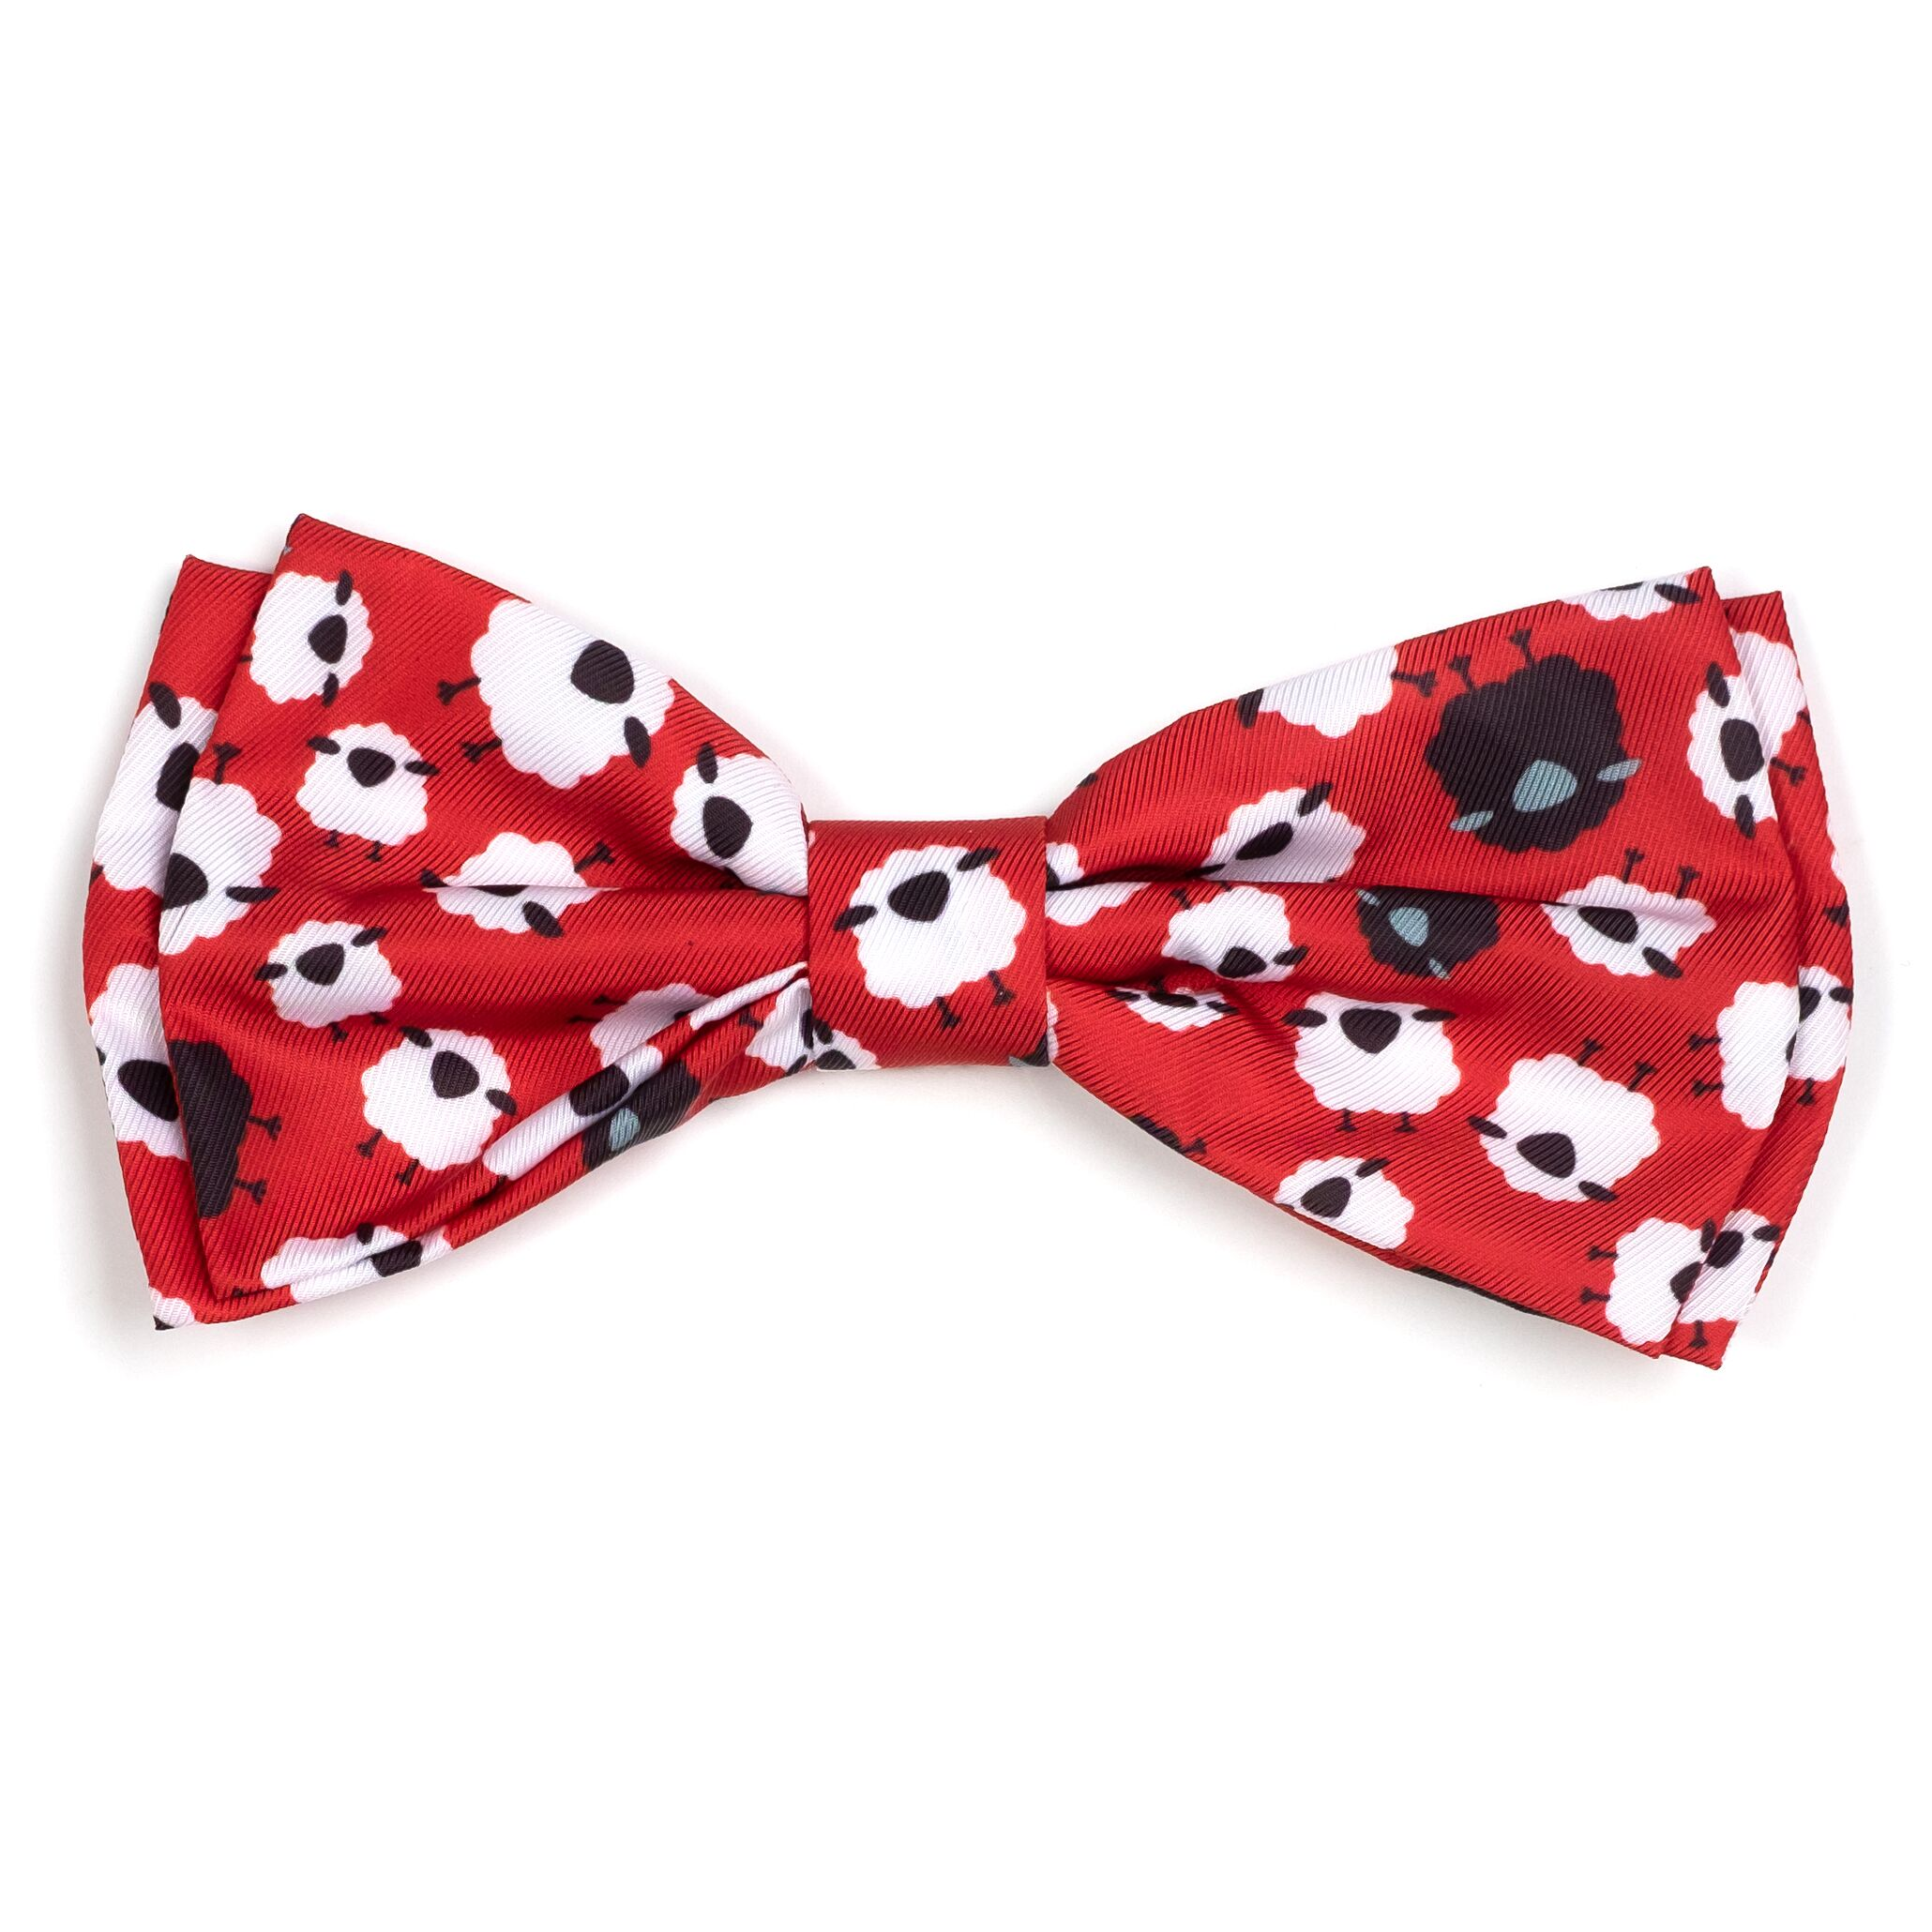 The Worthy Dog Bow Tie, Counting Sheep, Large